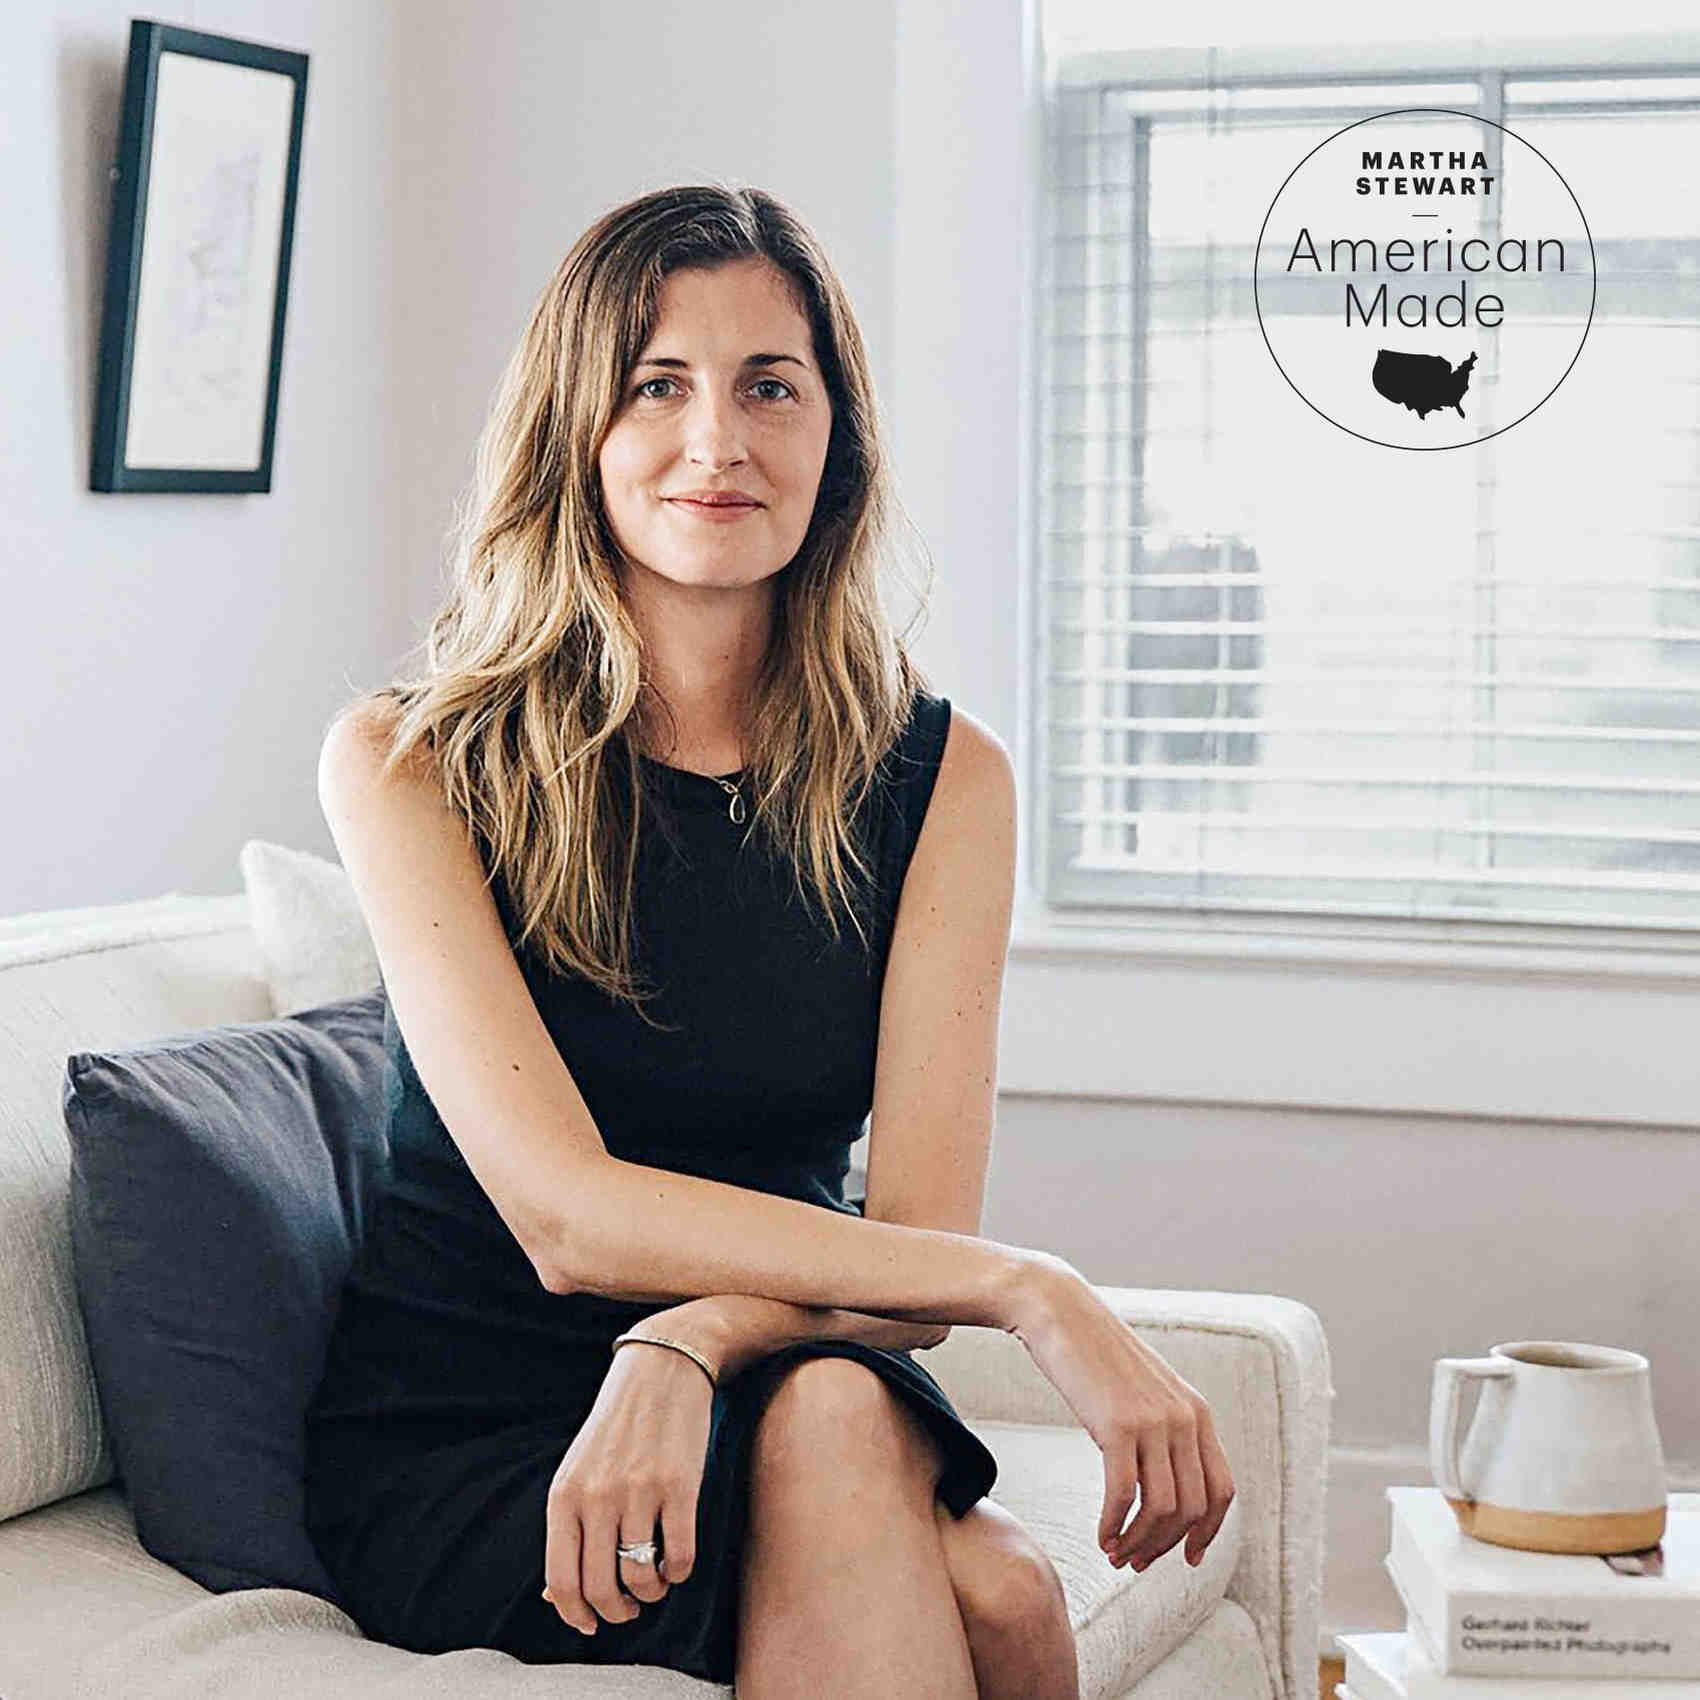 Meet Erin Reitz of the Shelter Collection